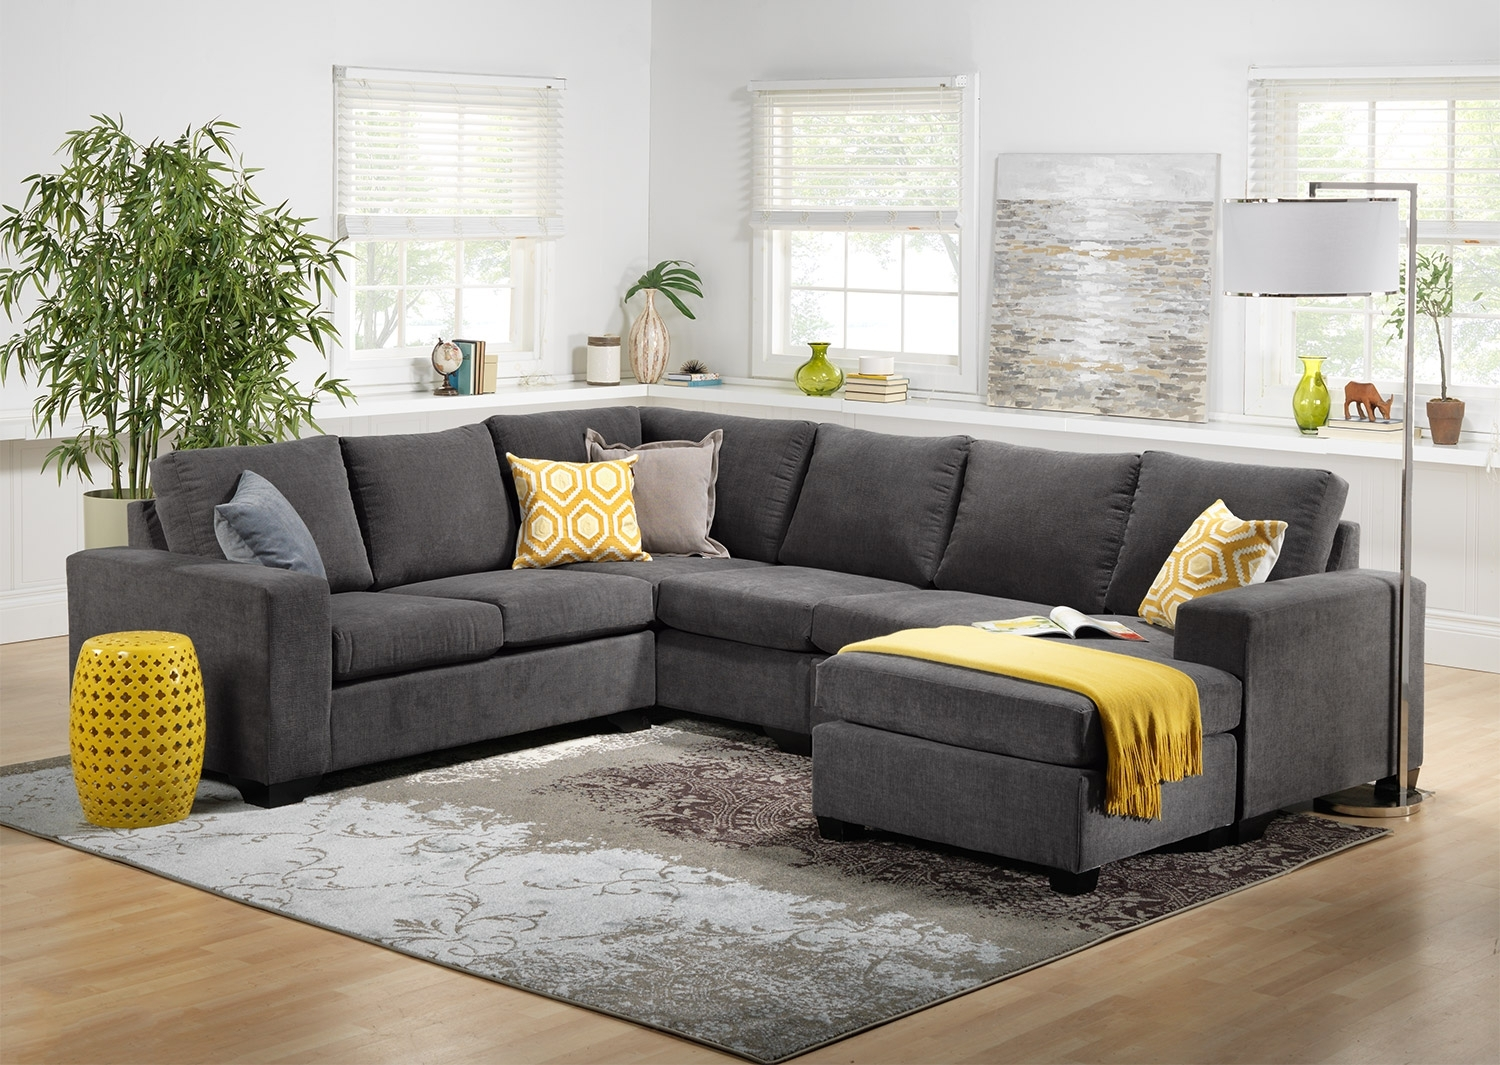 Used Sectional Sofas For Sale Edmonton Best Home Furniture Ideas For Ontario Canada Sectional Sofas (Photo 3 of 10)